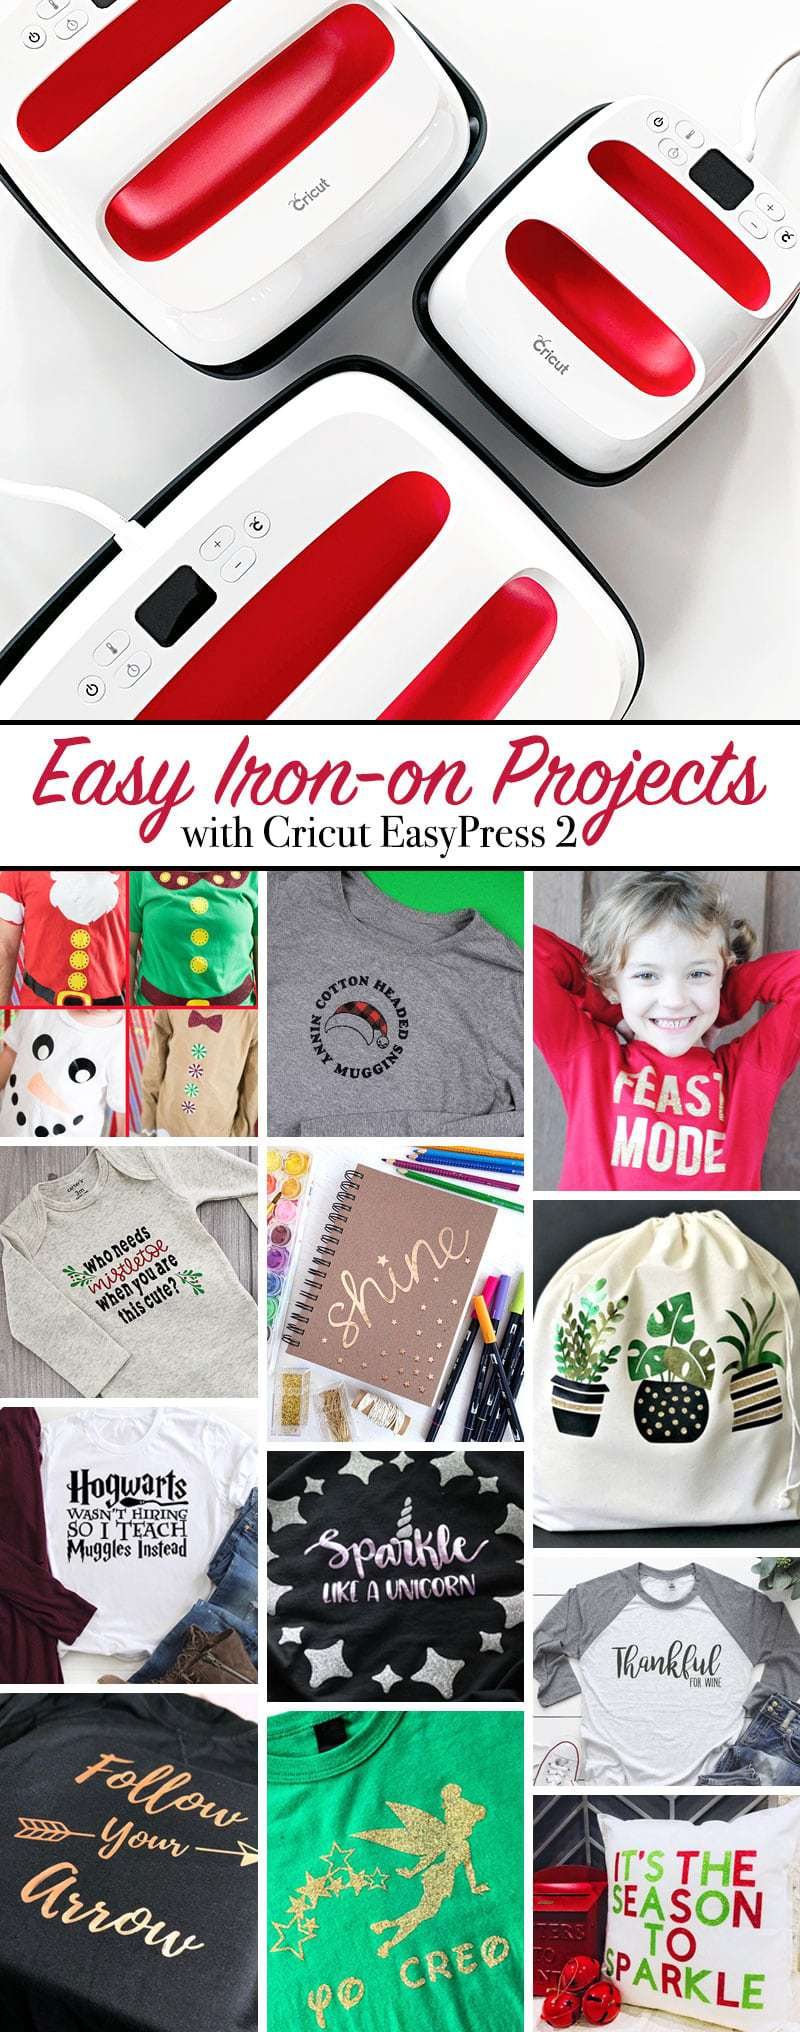 This adorableDIY Tinker Bell Shirt in Spanish is perfect for Tinker Bell fans, trips to Disneyland and bilingual families of all shapes and sizes!